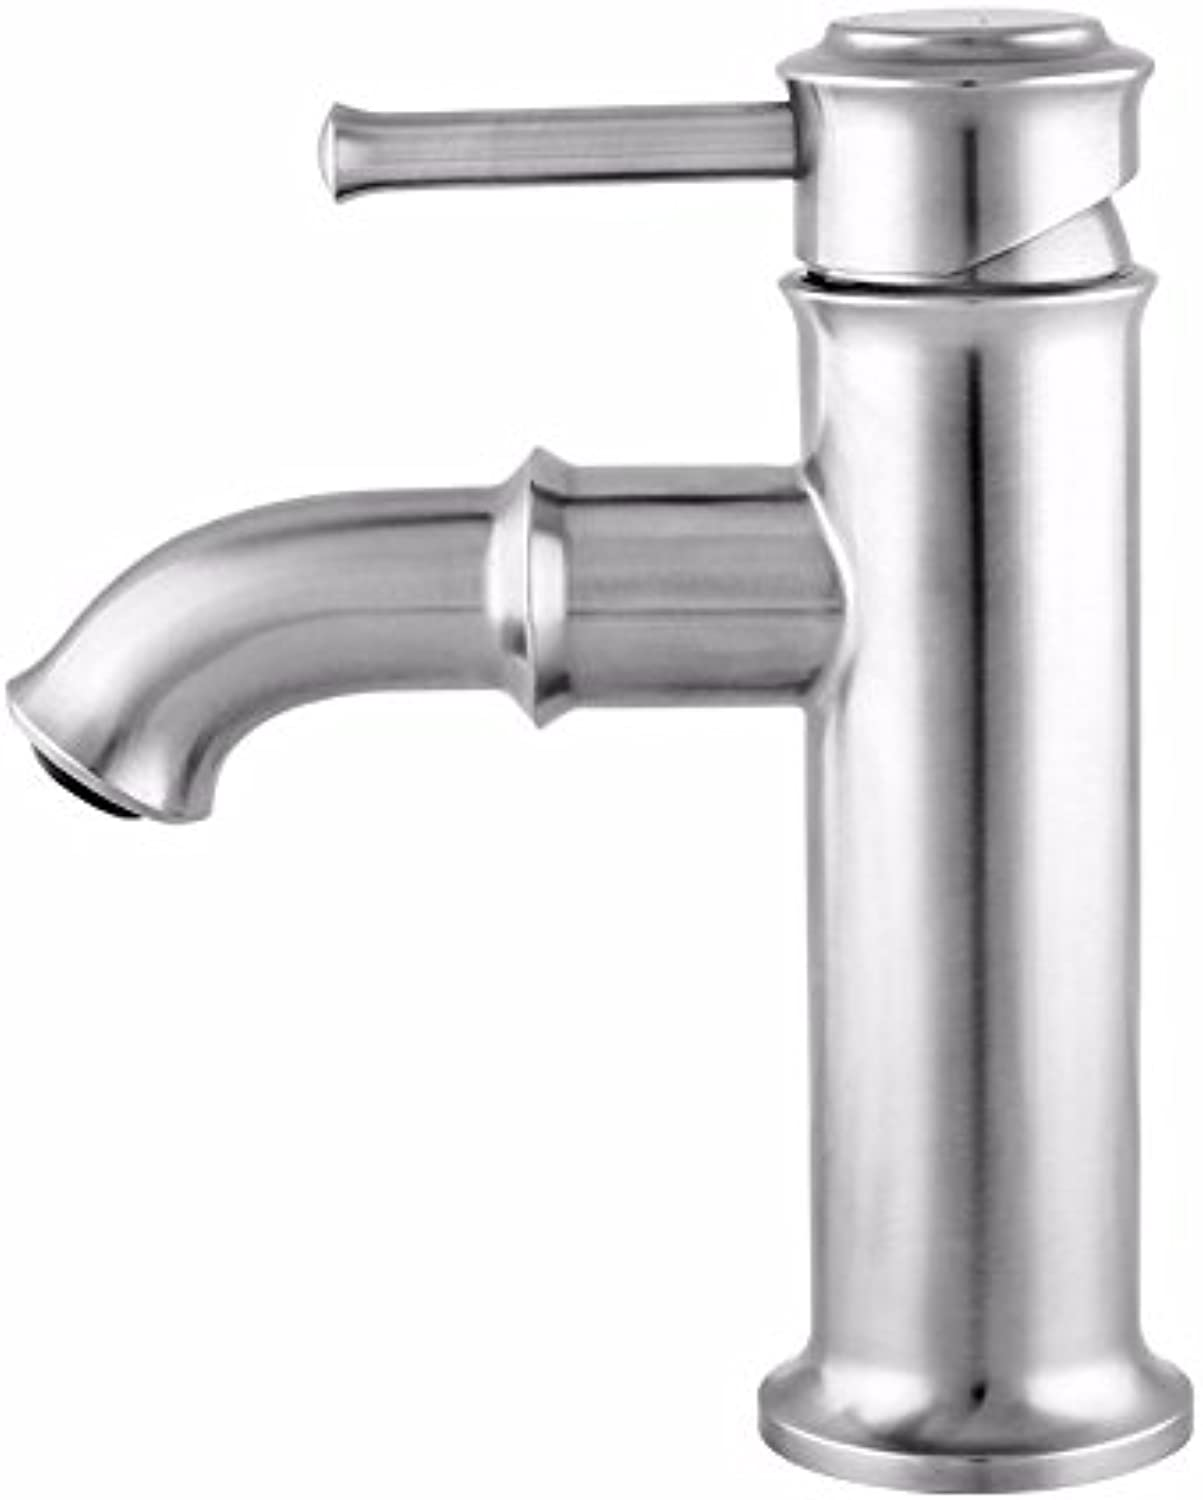 LIANTIAN Lead-Free 304 Stainless Steel Single Hole redatable hot and Cold Water???Kitchen Bathroom Bathroom Basin Faucet???Simple???Environmental Predection and Energy Saving Bathroom Sink Taps